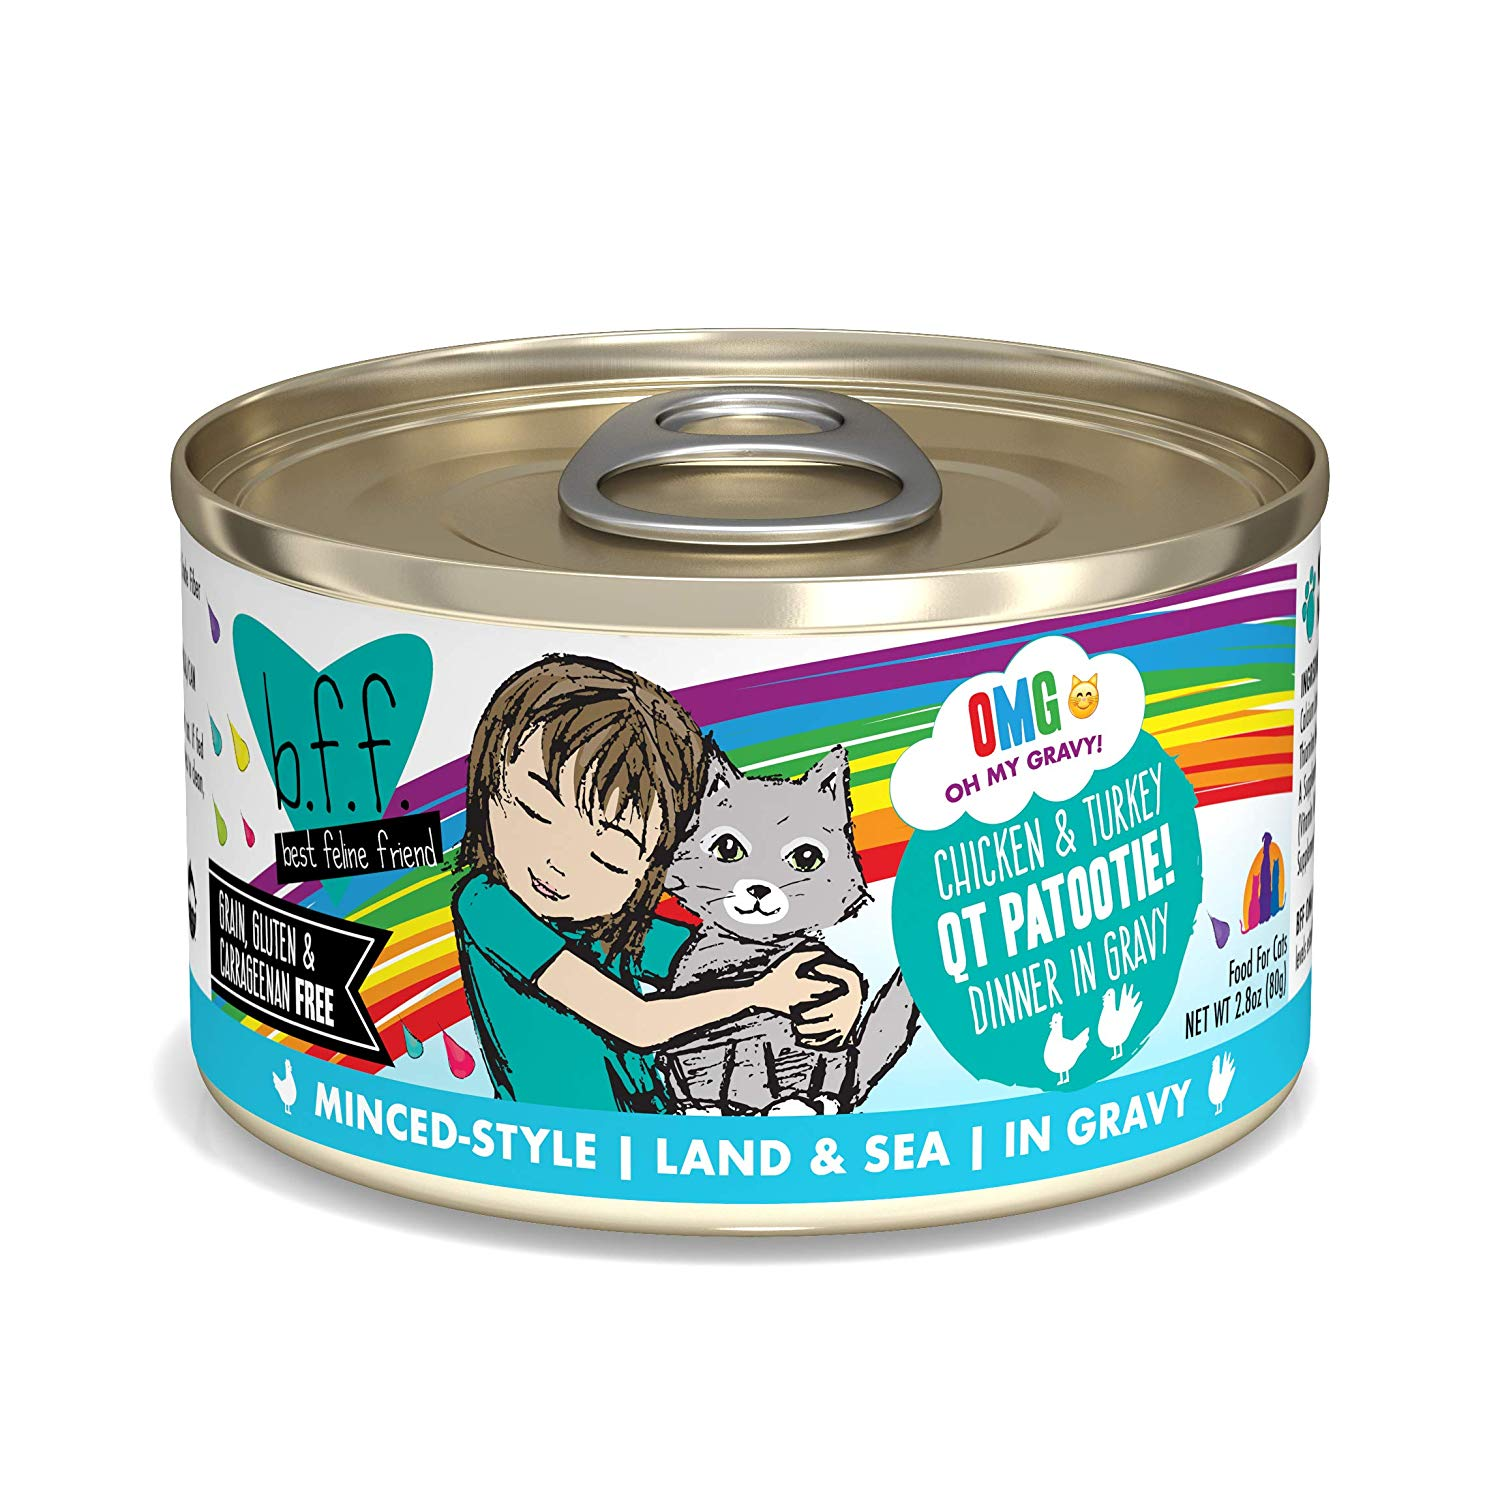 BFF Oh My Gravy! QT Patootie! Chicken & Turkey Dinner in Gravy Grain-Free Wet Cat Food, 2.8-oz